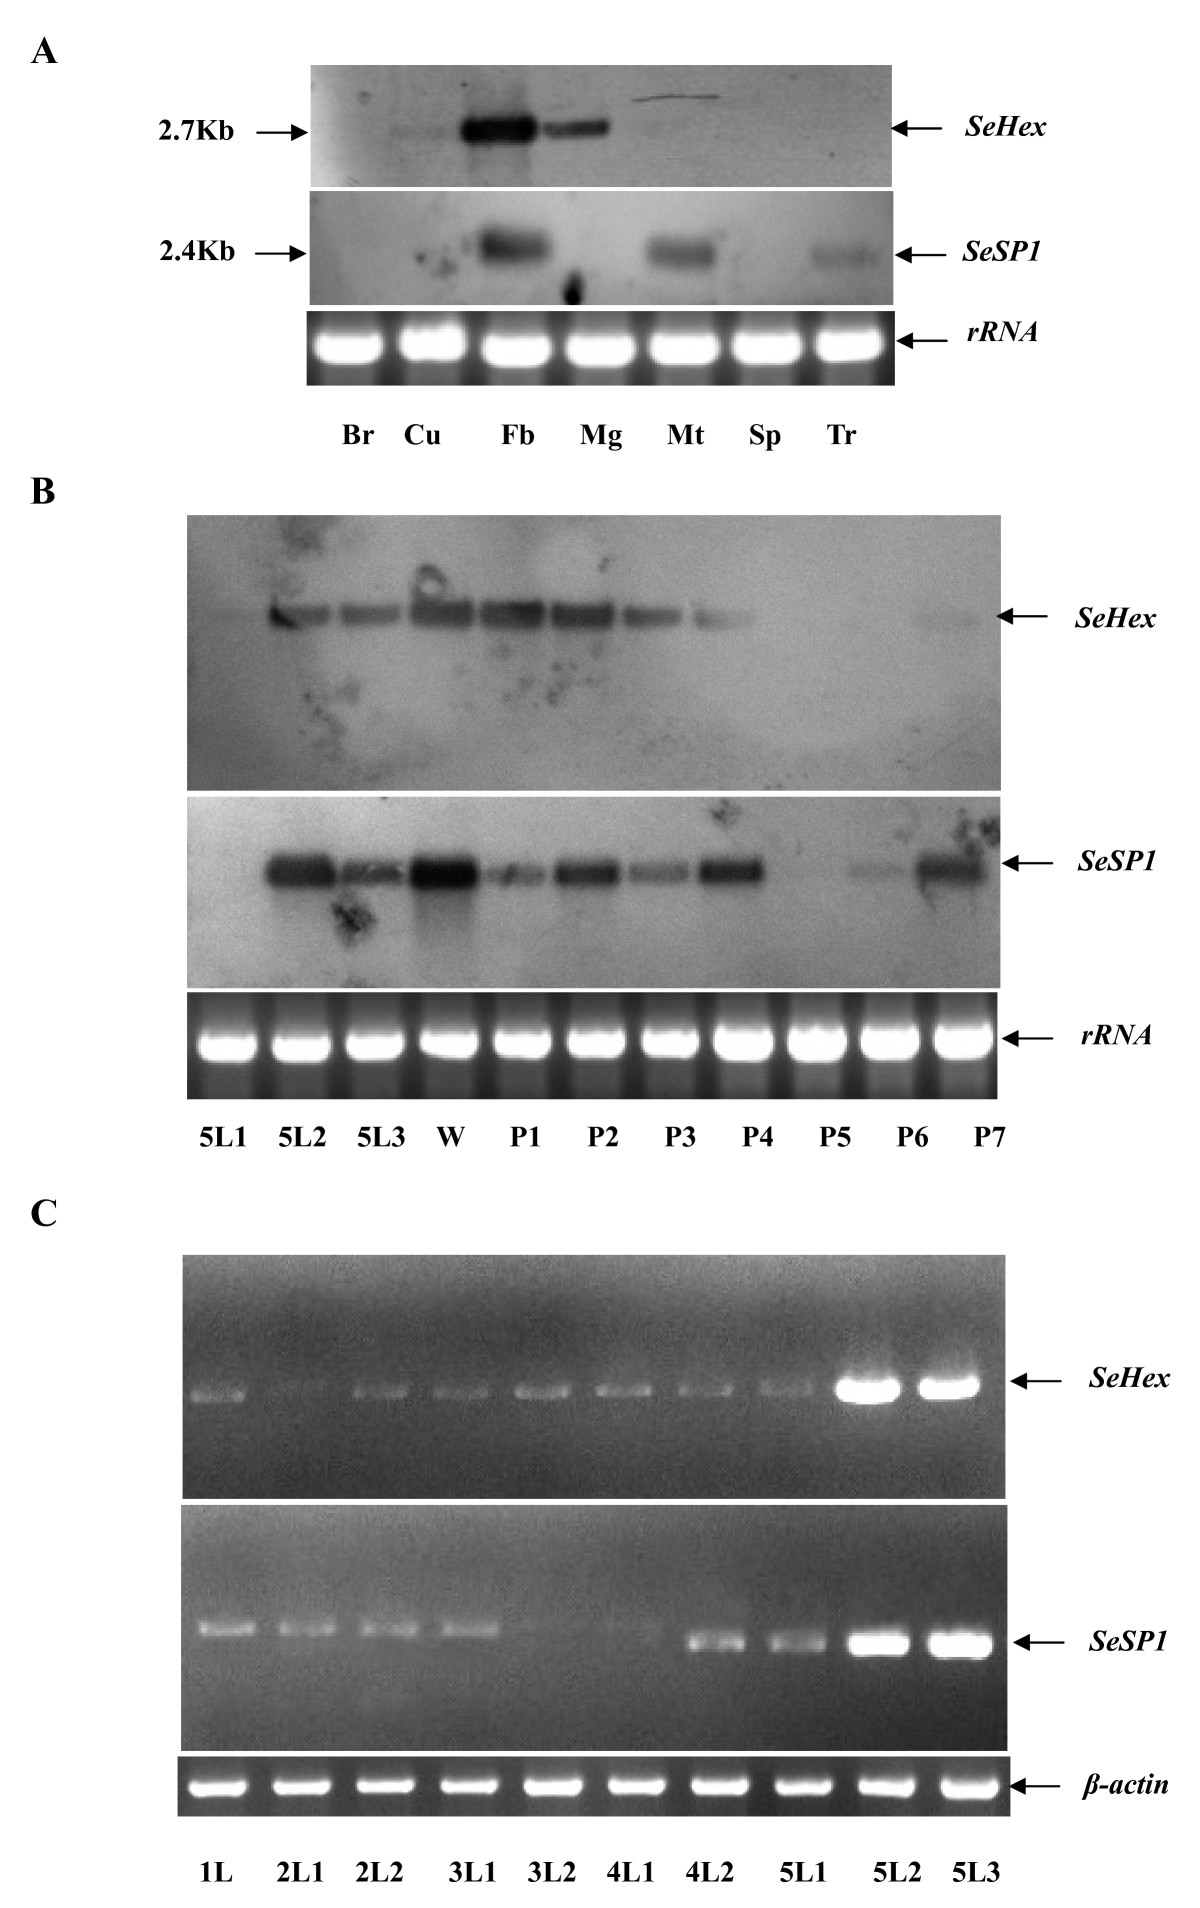 http://static-content.springer.com/image/art%3A10.1186%2F1471-2199-11-65/MediaObjects/12867_2009_Article_546_Fig3_HTML.jpg